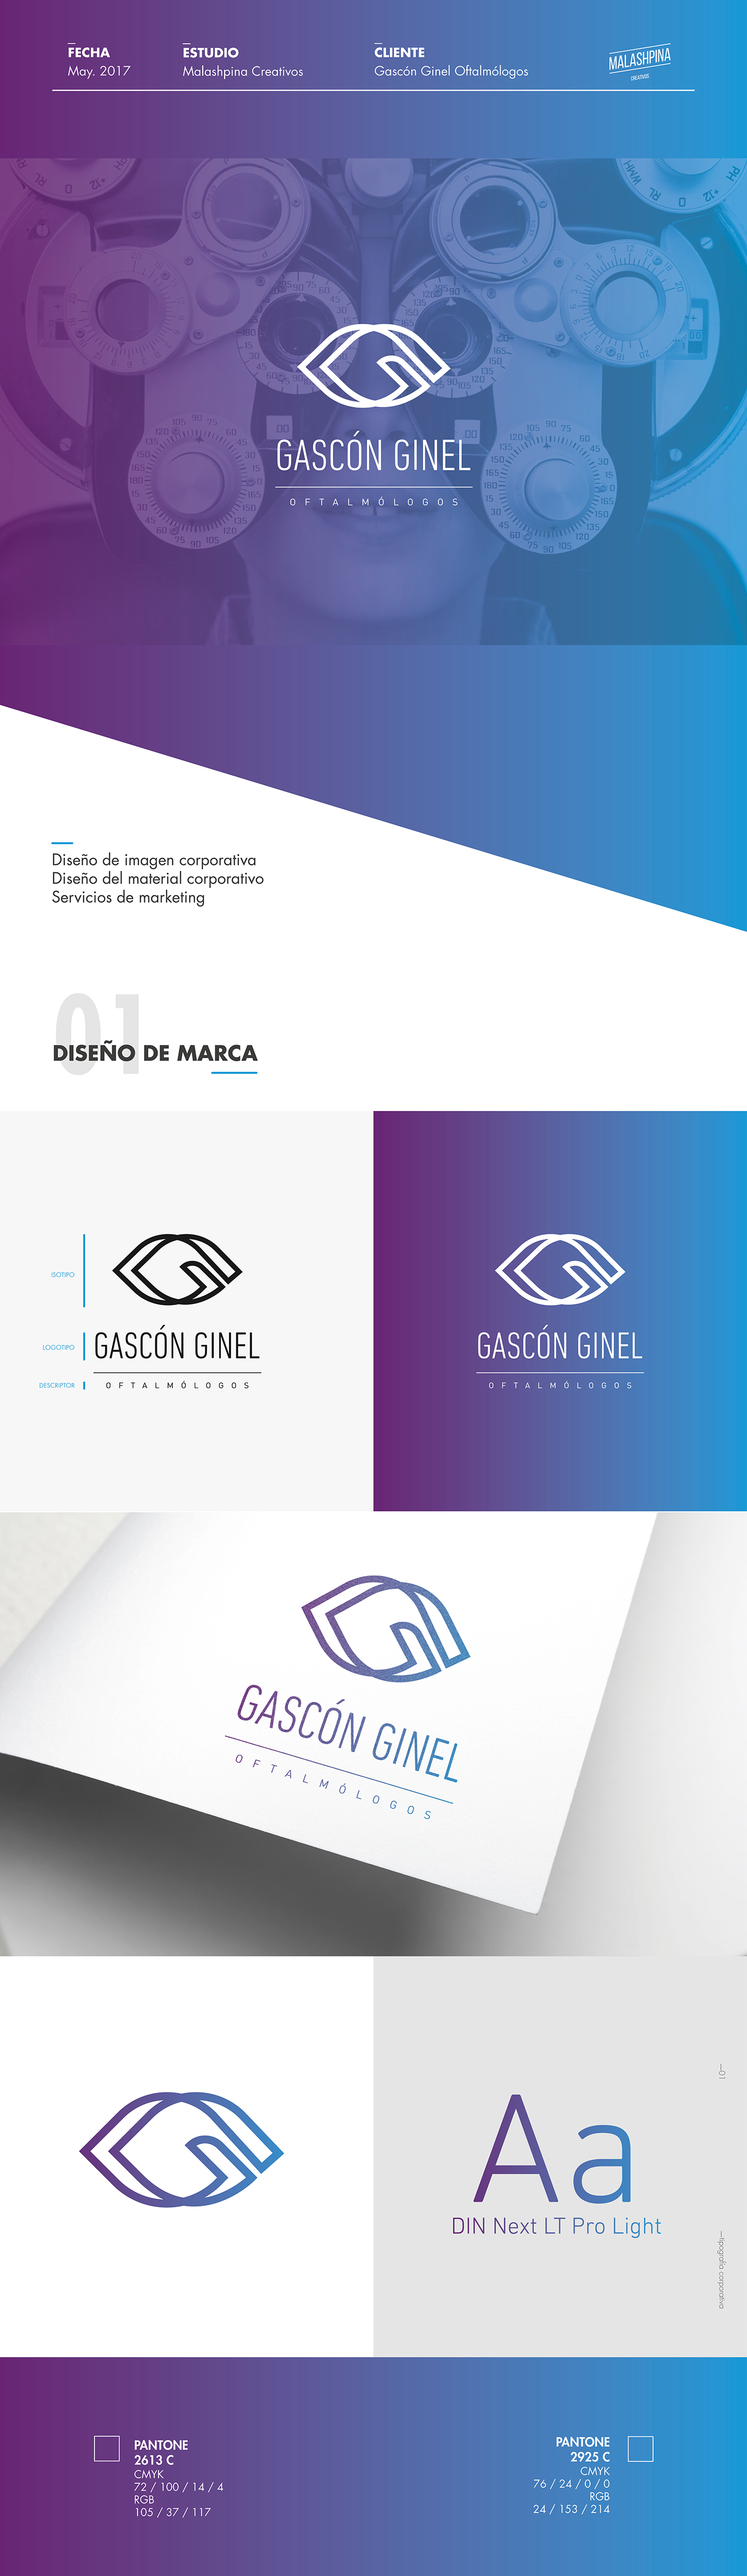 branding ,brand,design,graphic design ,Brand stationery,granada,malaga,ophthalmologist,oculist,Corporate Stationery